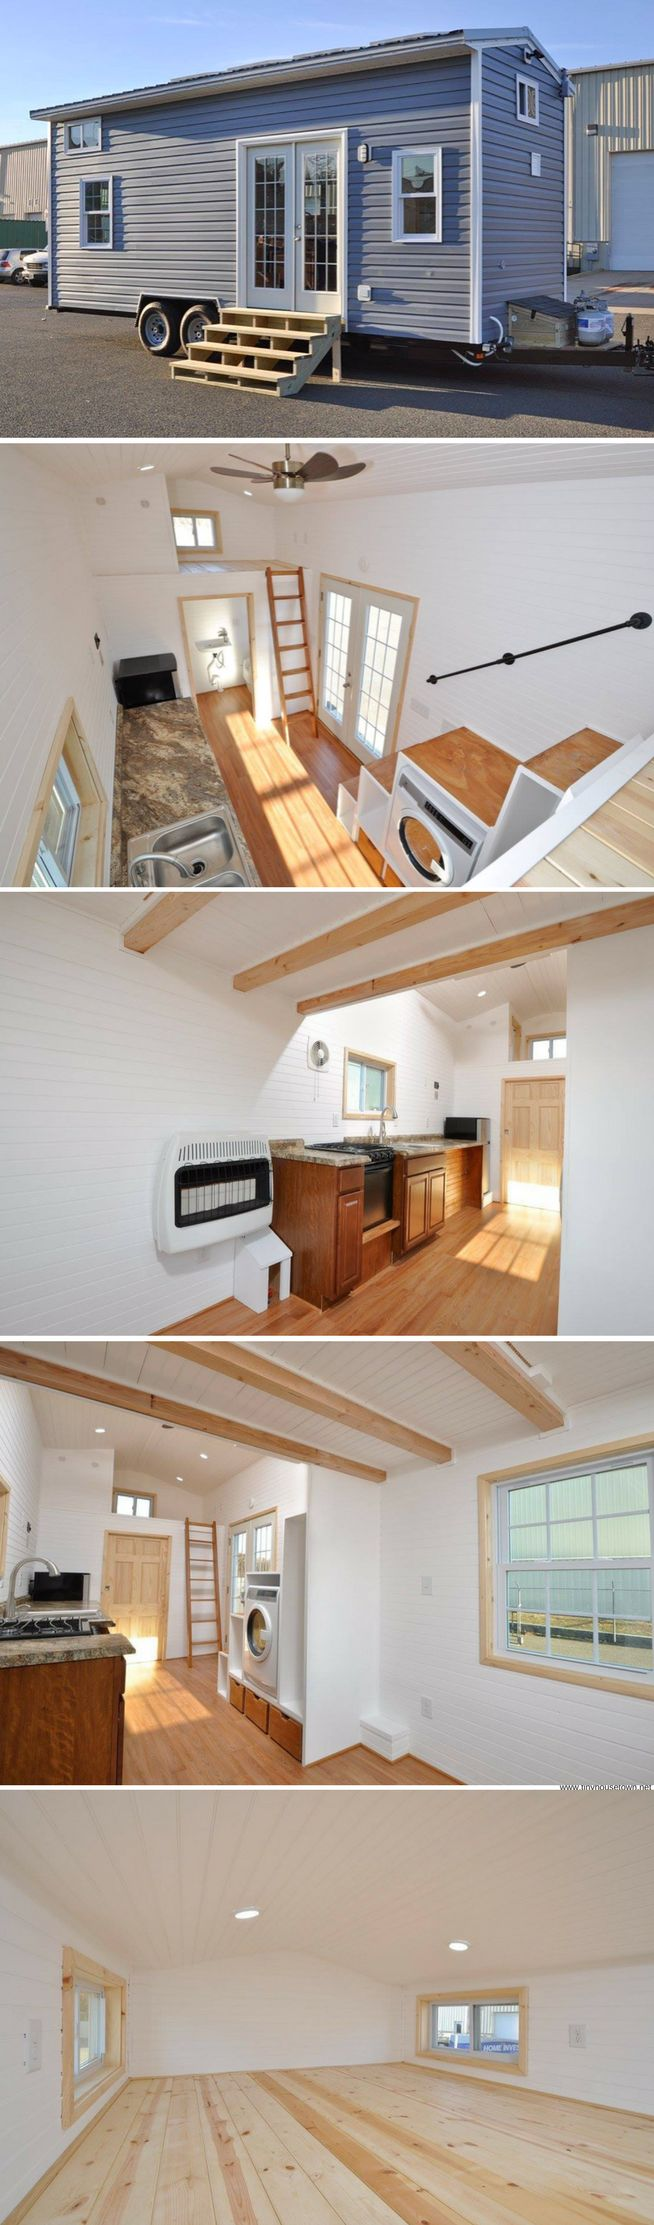 best small abode images on pinterest